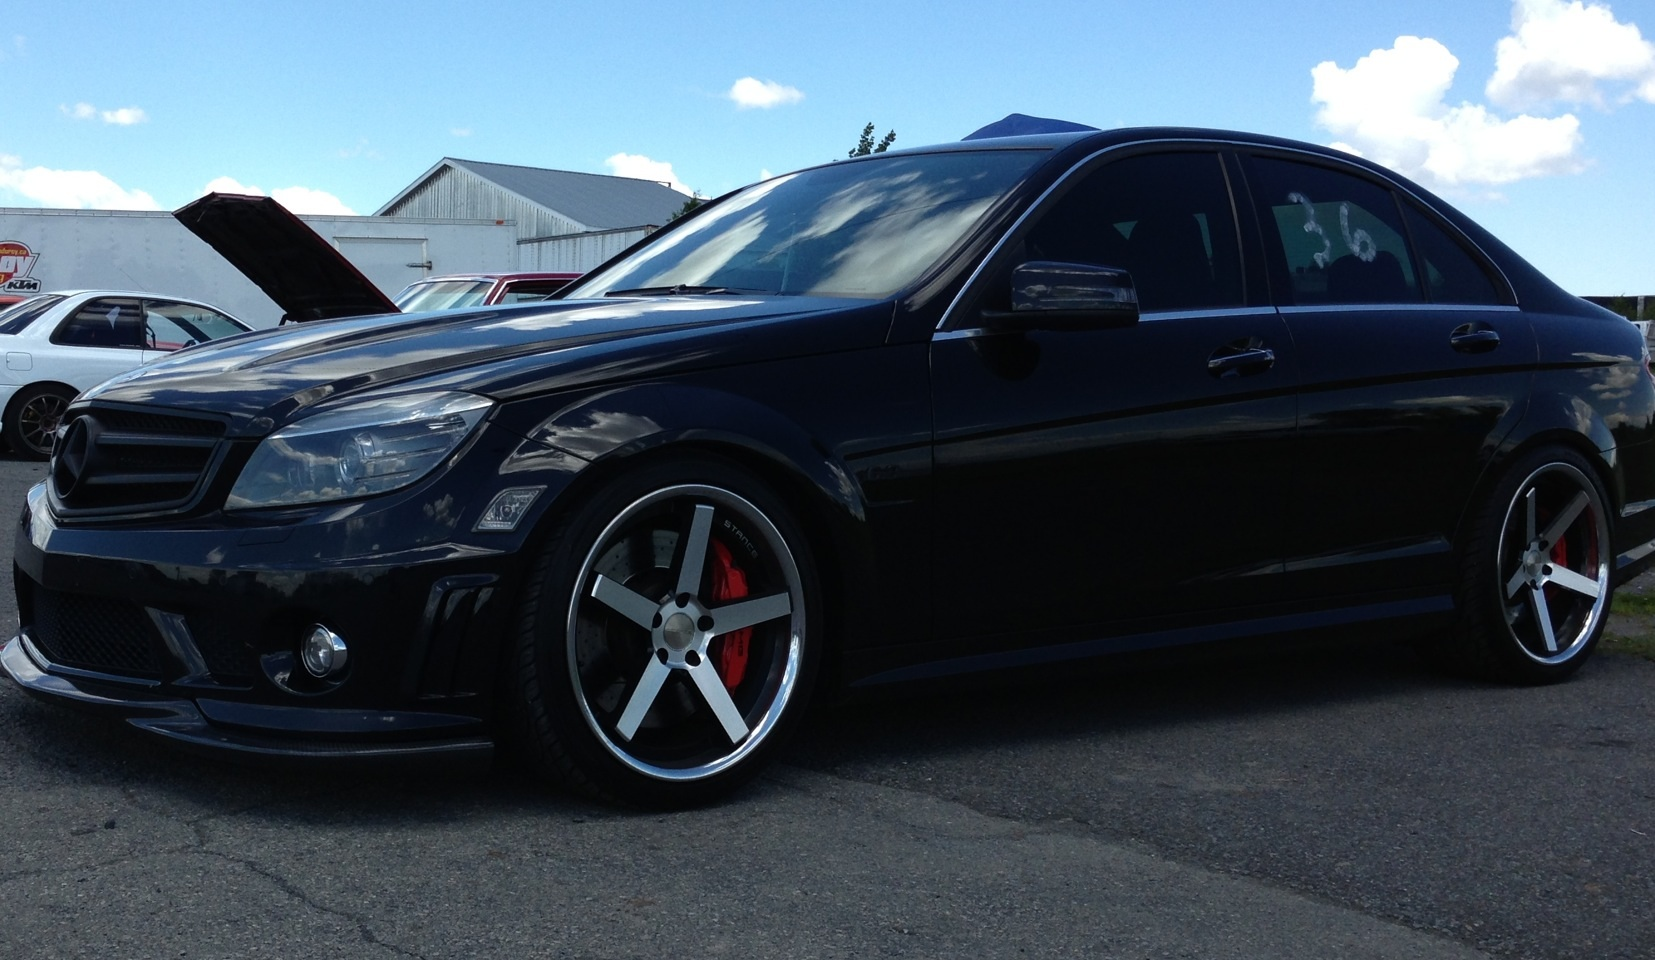 stock 2010 mercedes benz c63 amg p31 1 4 mile drag racing timeslip specs 0 60. Black Bedroom Furniture Sets. Home Design Ideas